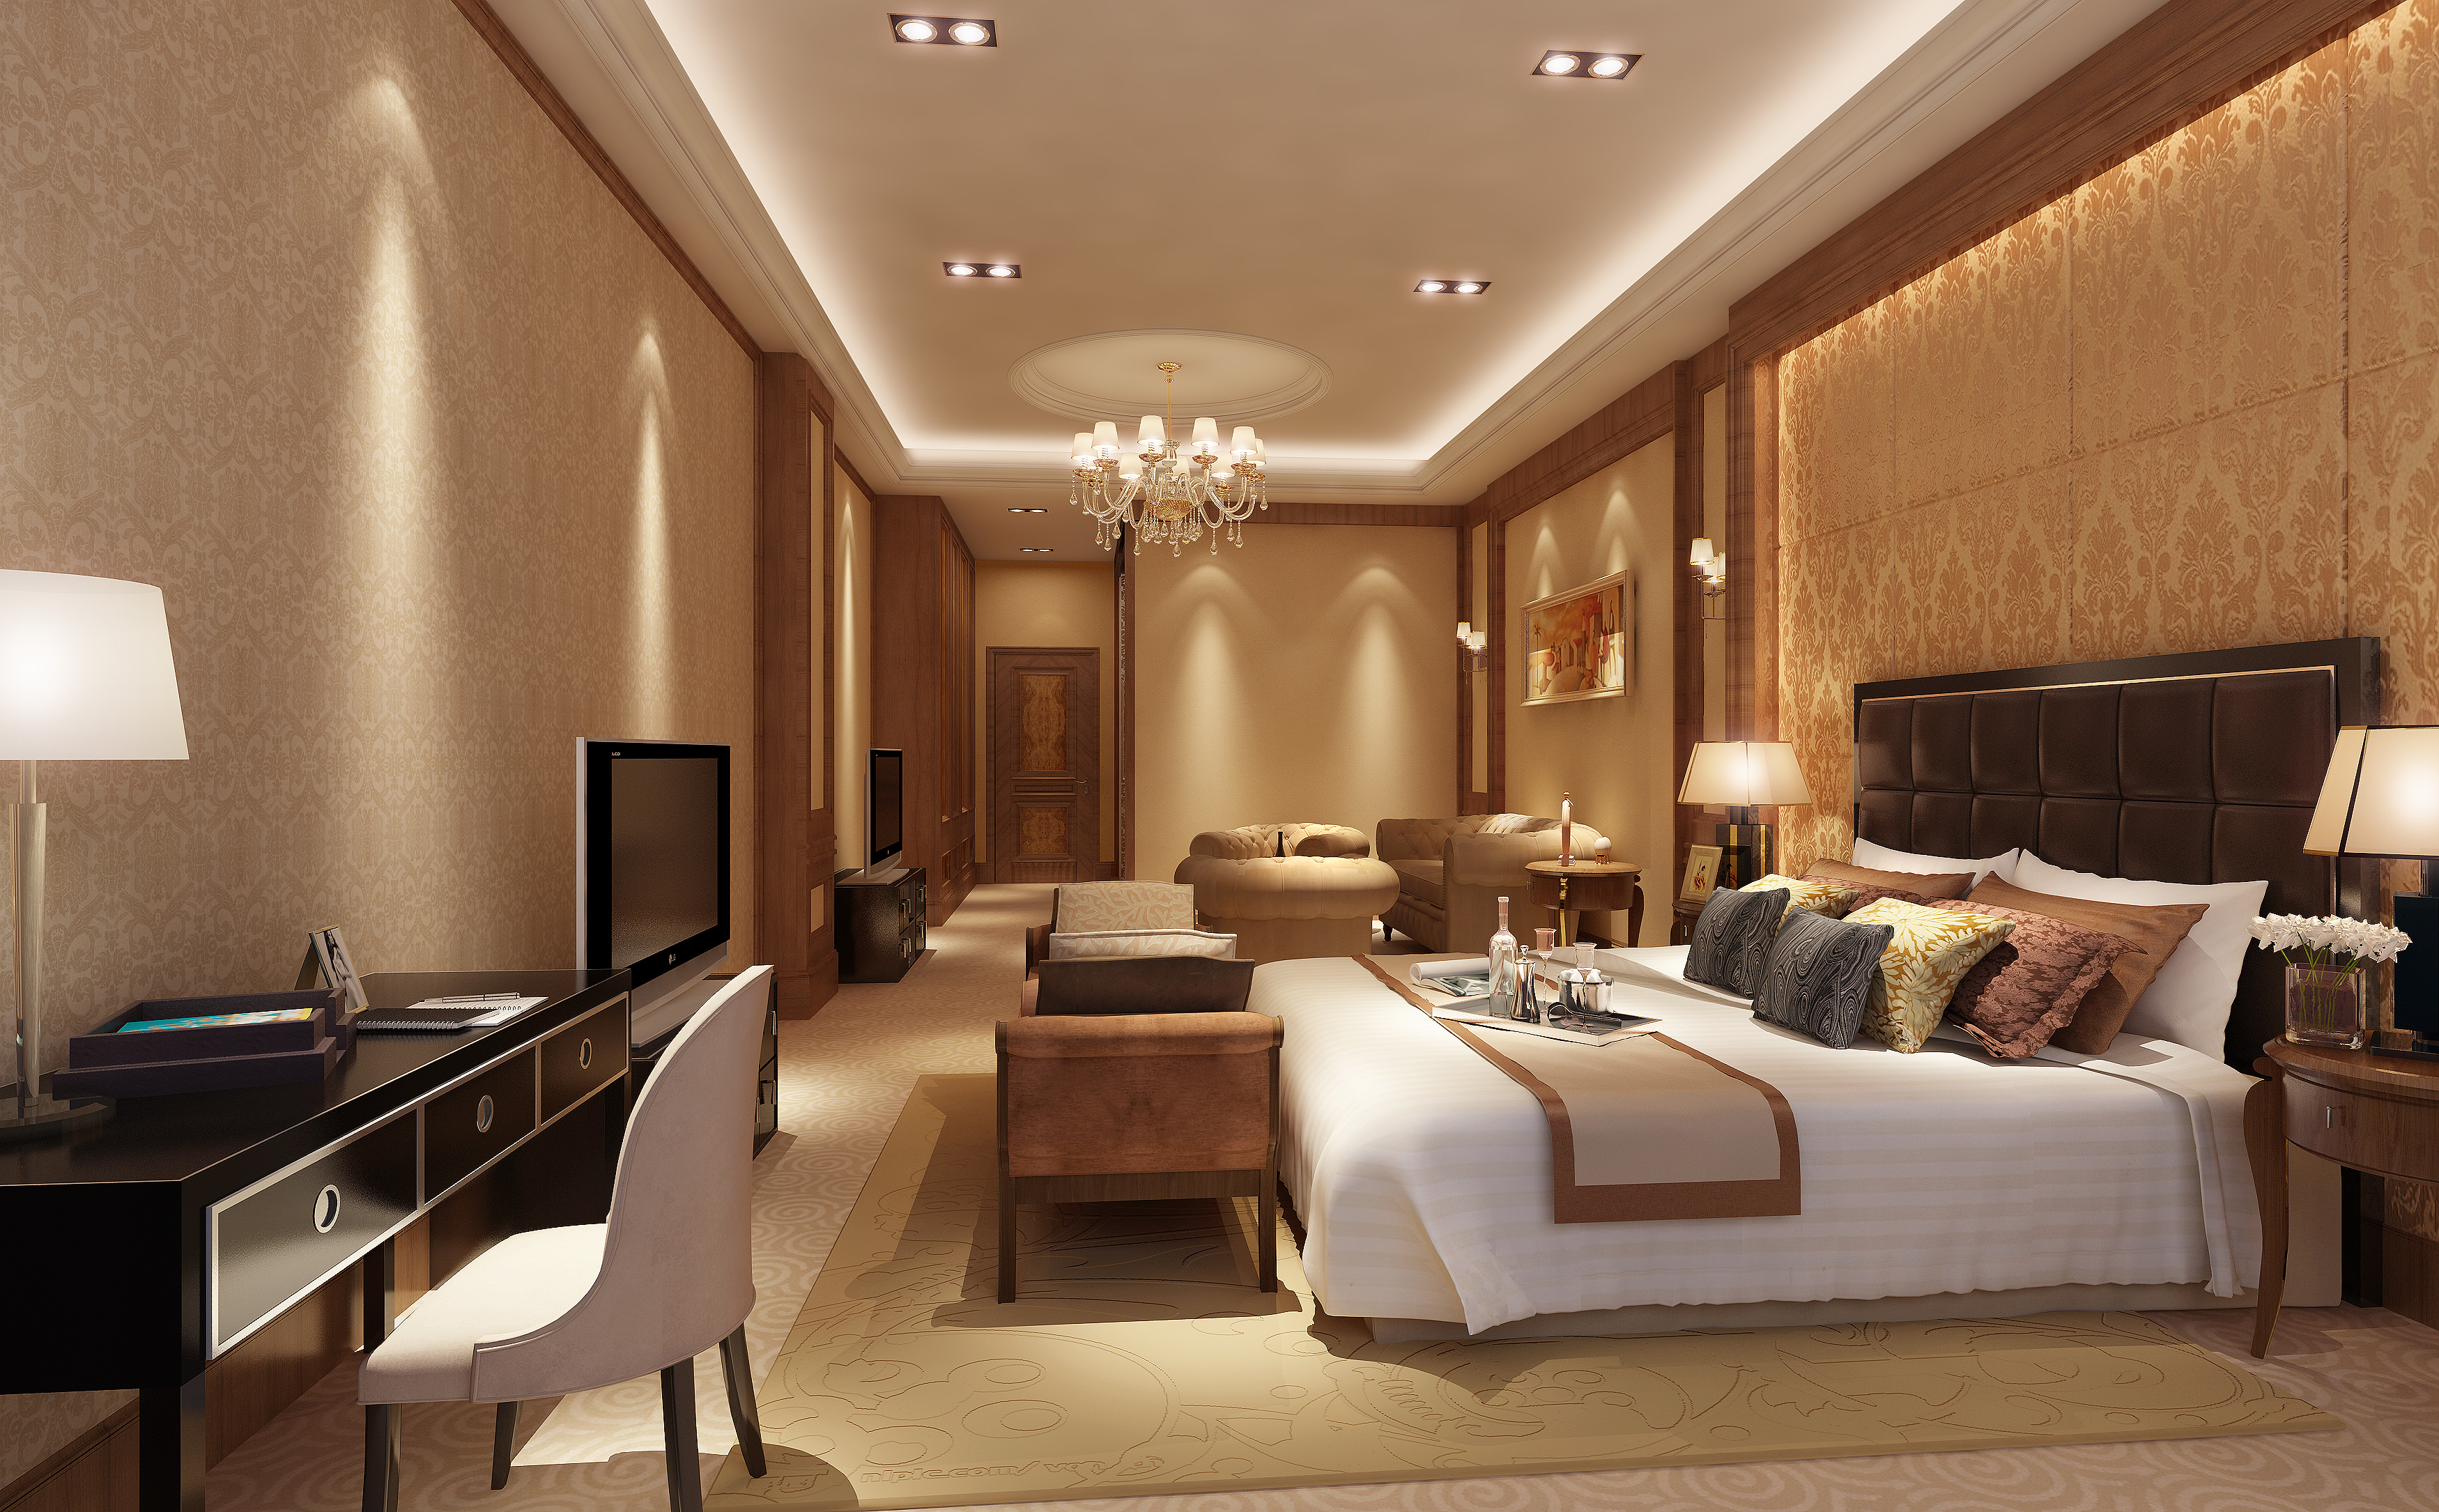 Huge bedroom 3d model max Huge master bedroom ideas